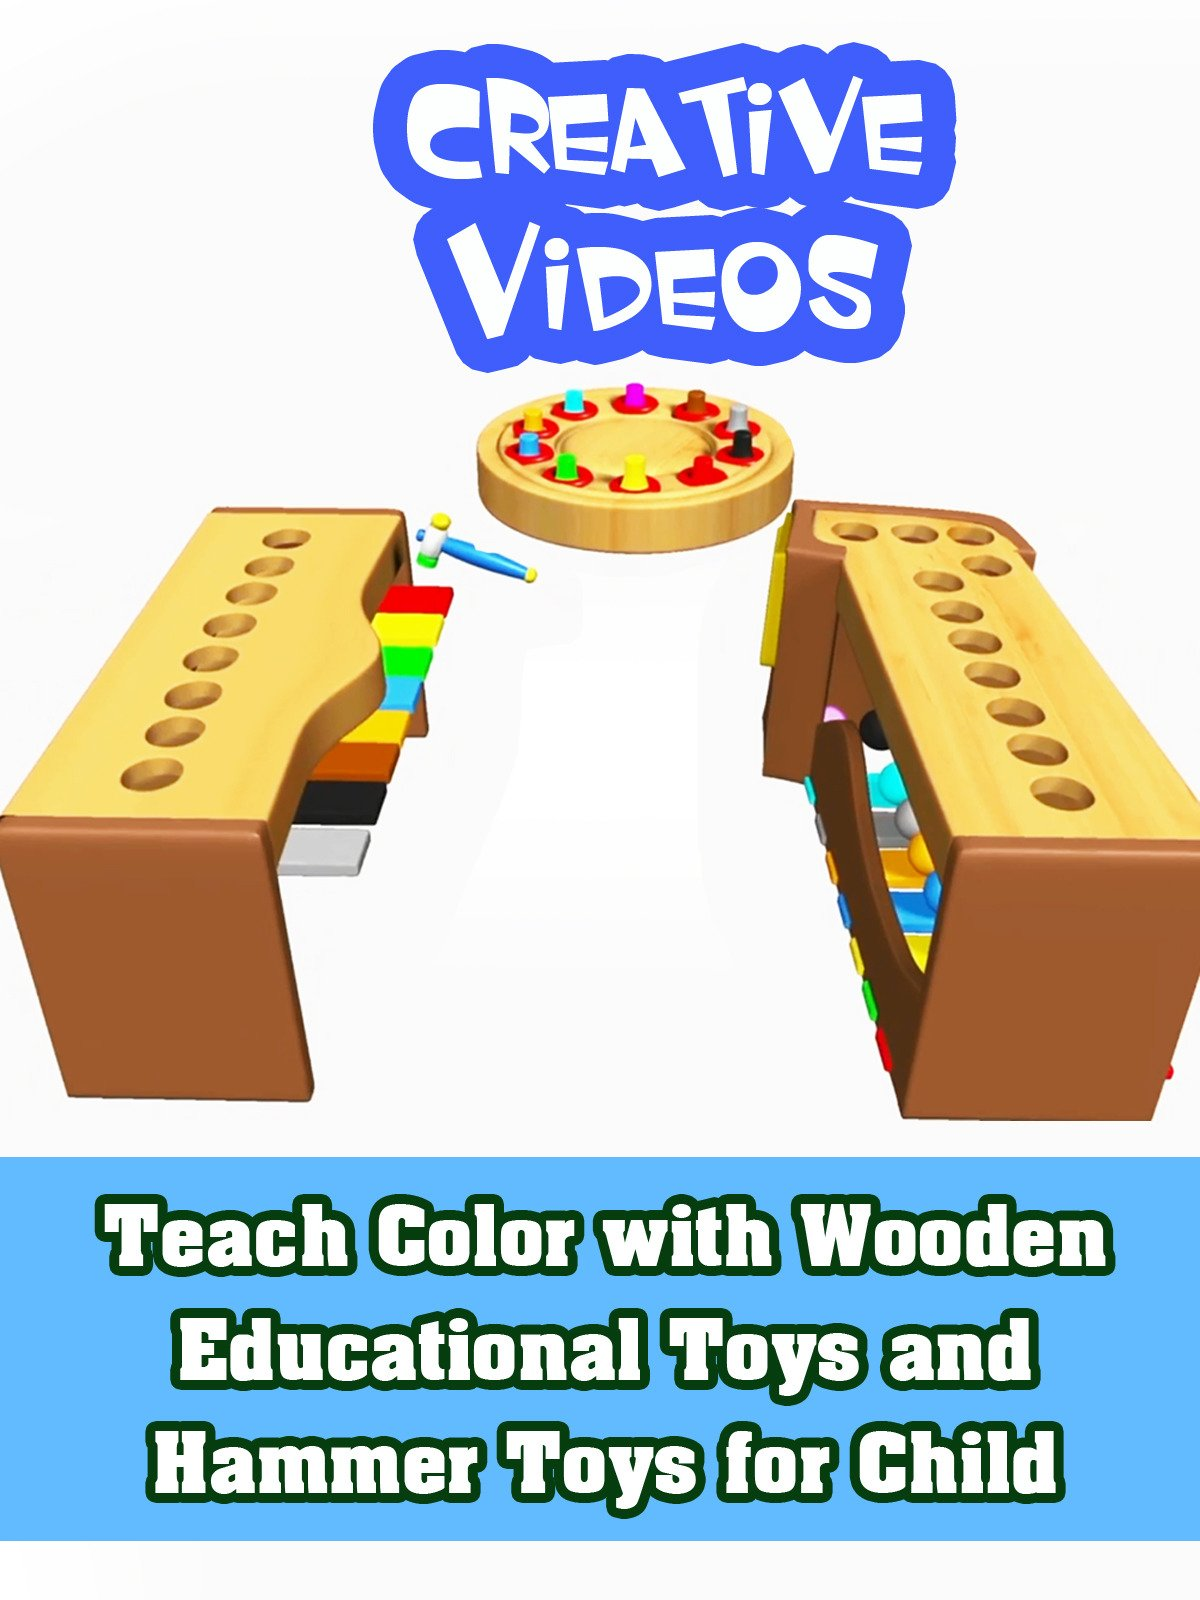 Teach Color with Wooden Educational Toys and Hammer Toys for Child